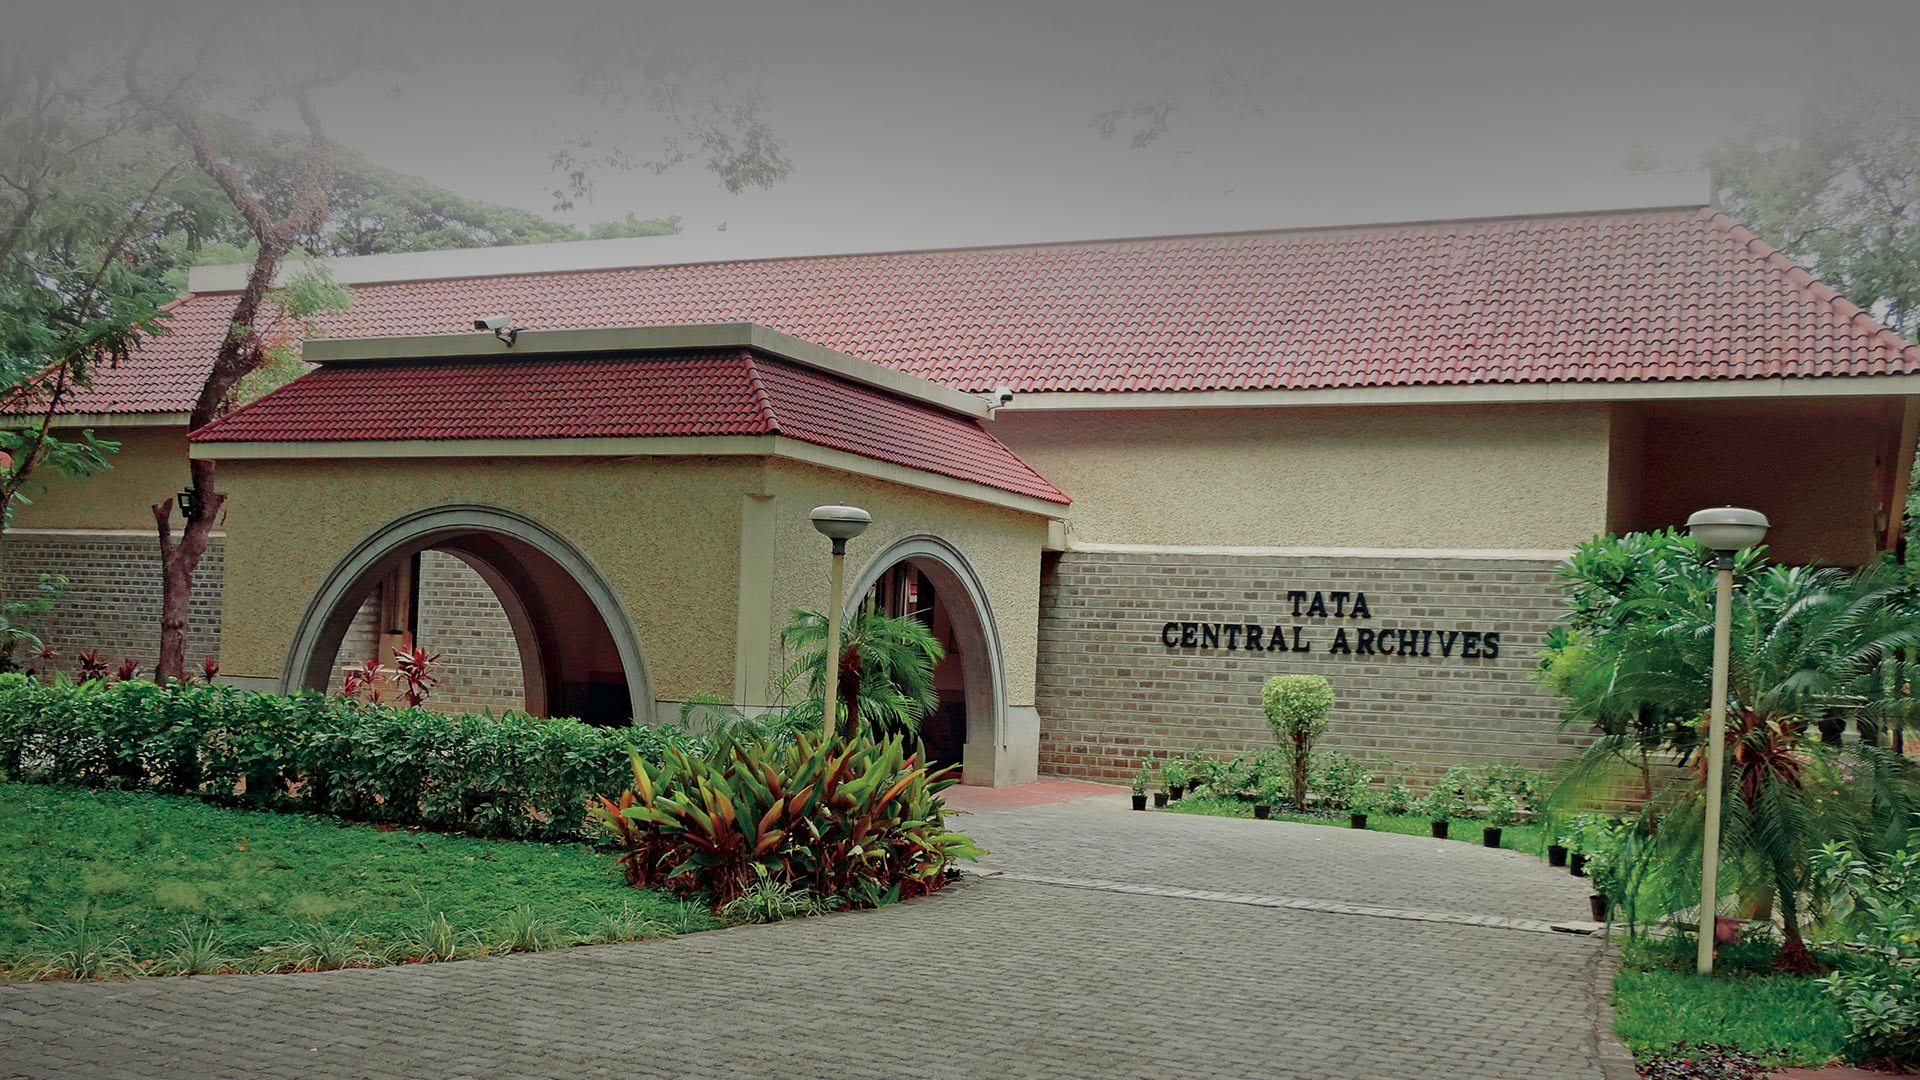 Tata Central Archives